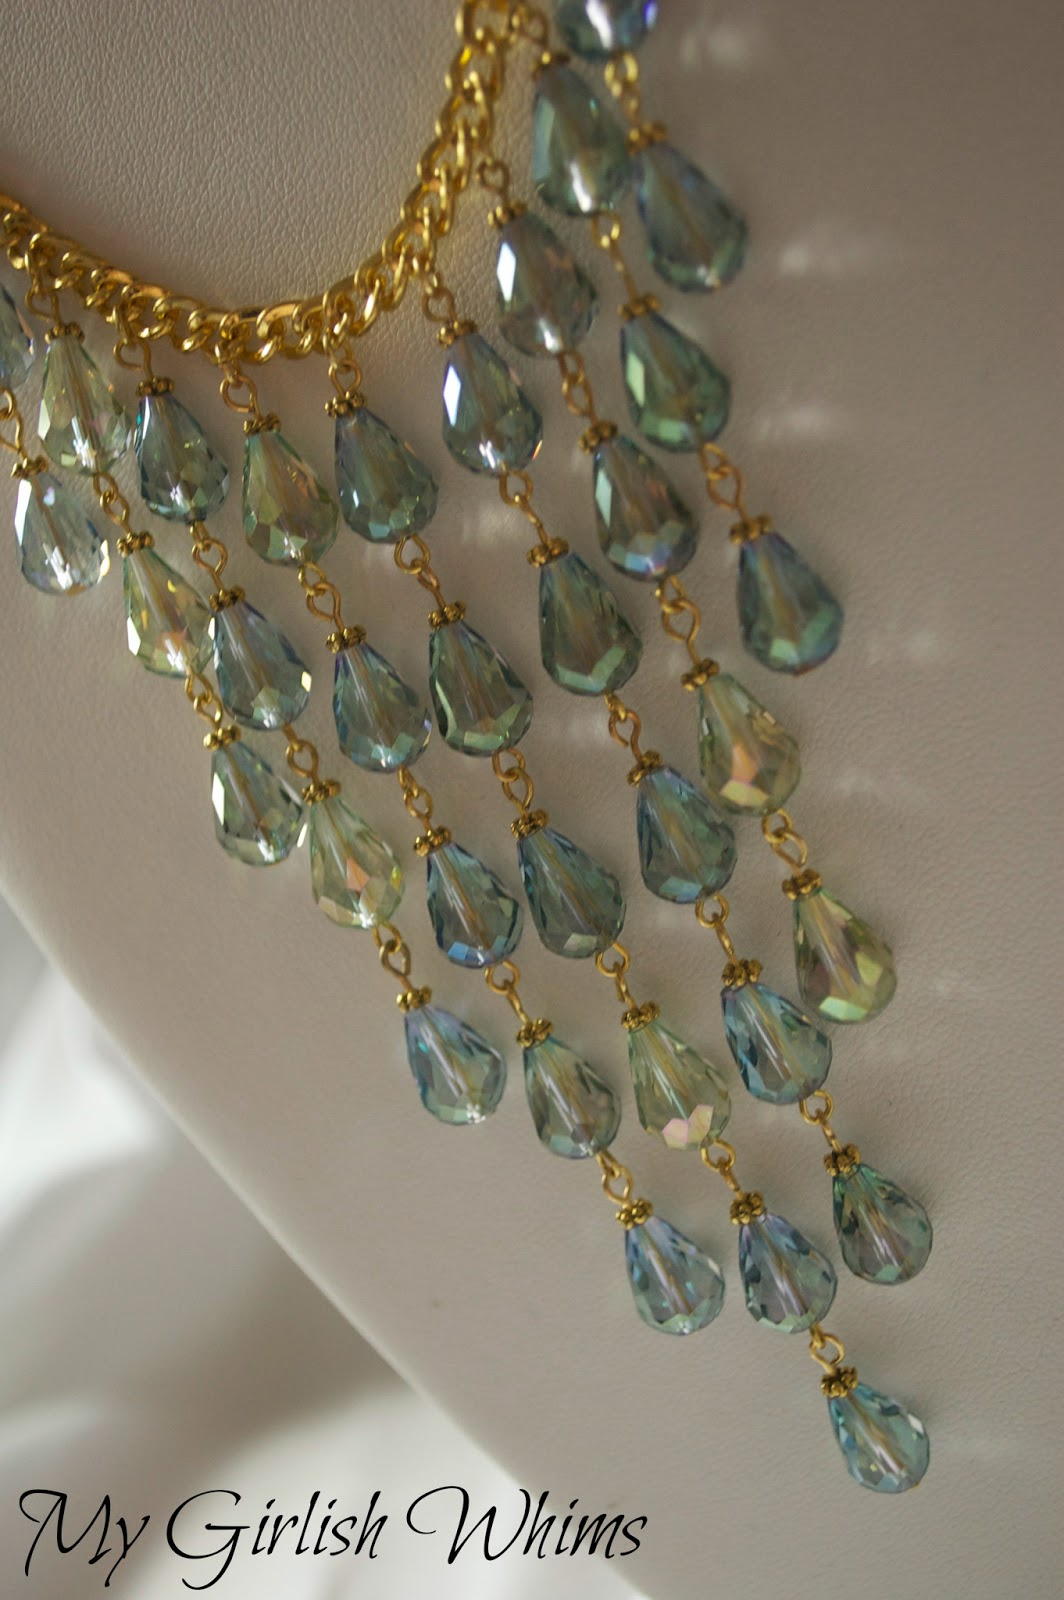 Mermaid Necklace Tutorial - My Girlish Whims